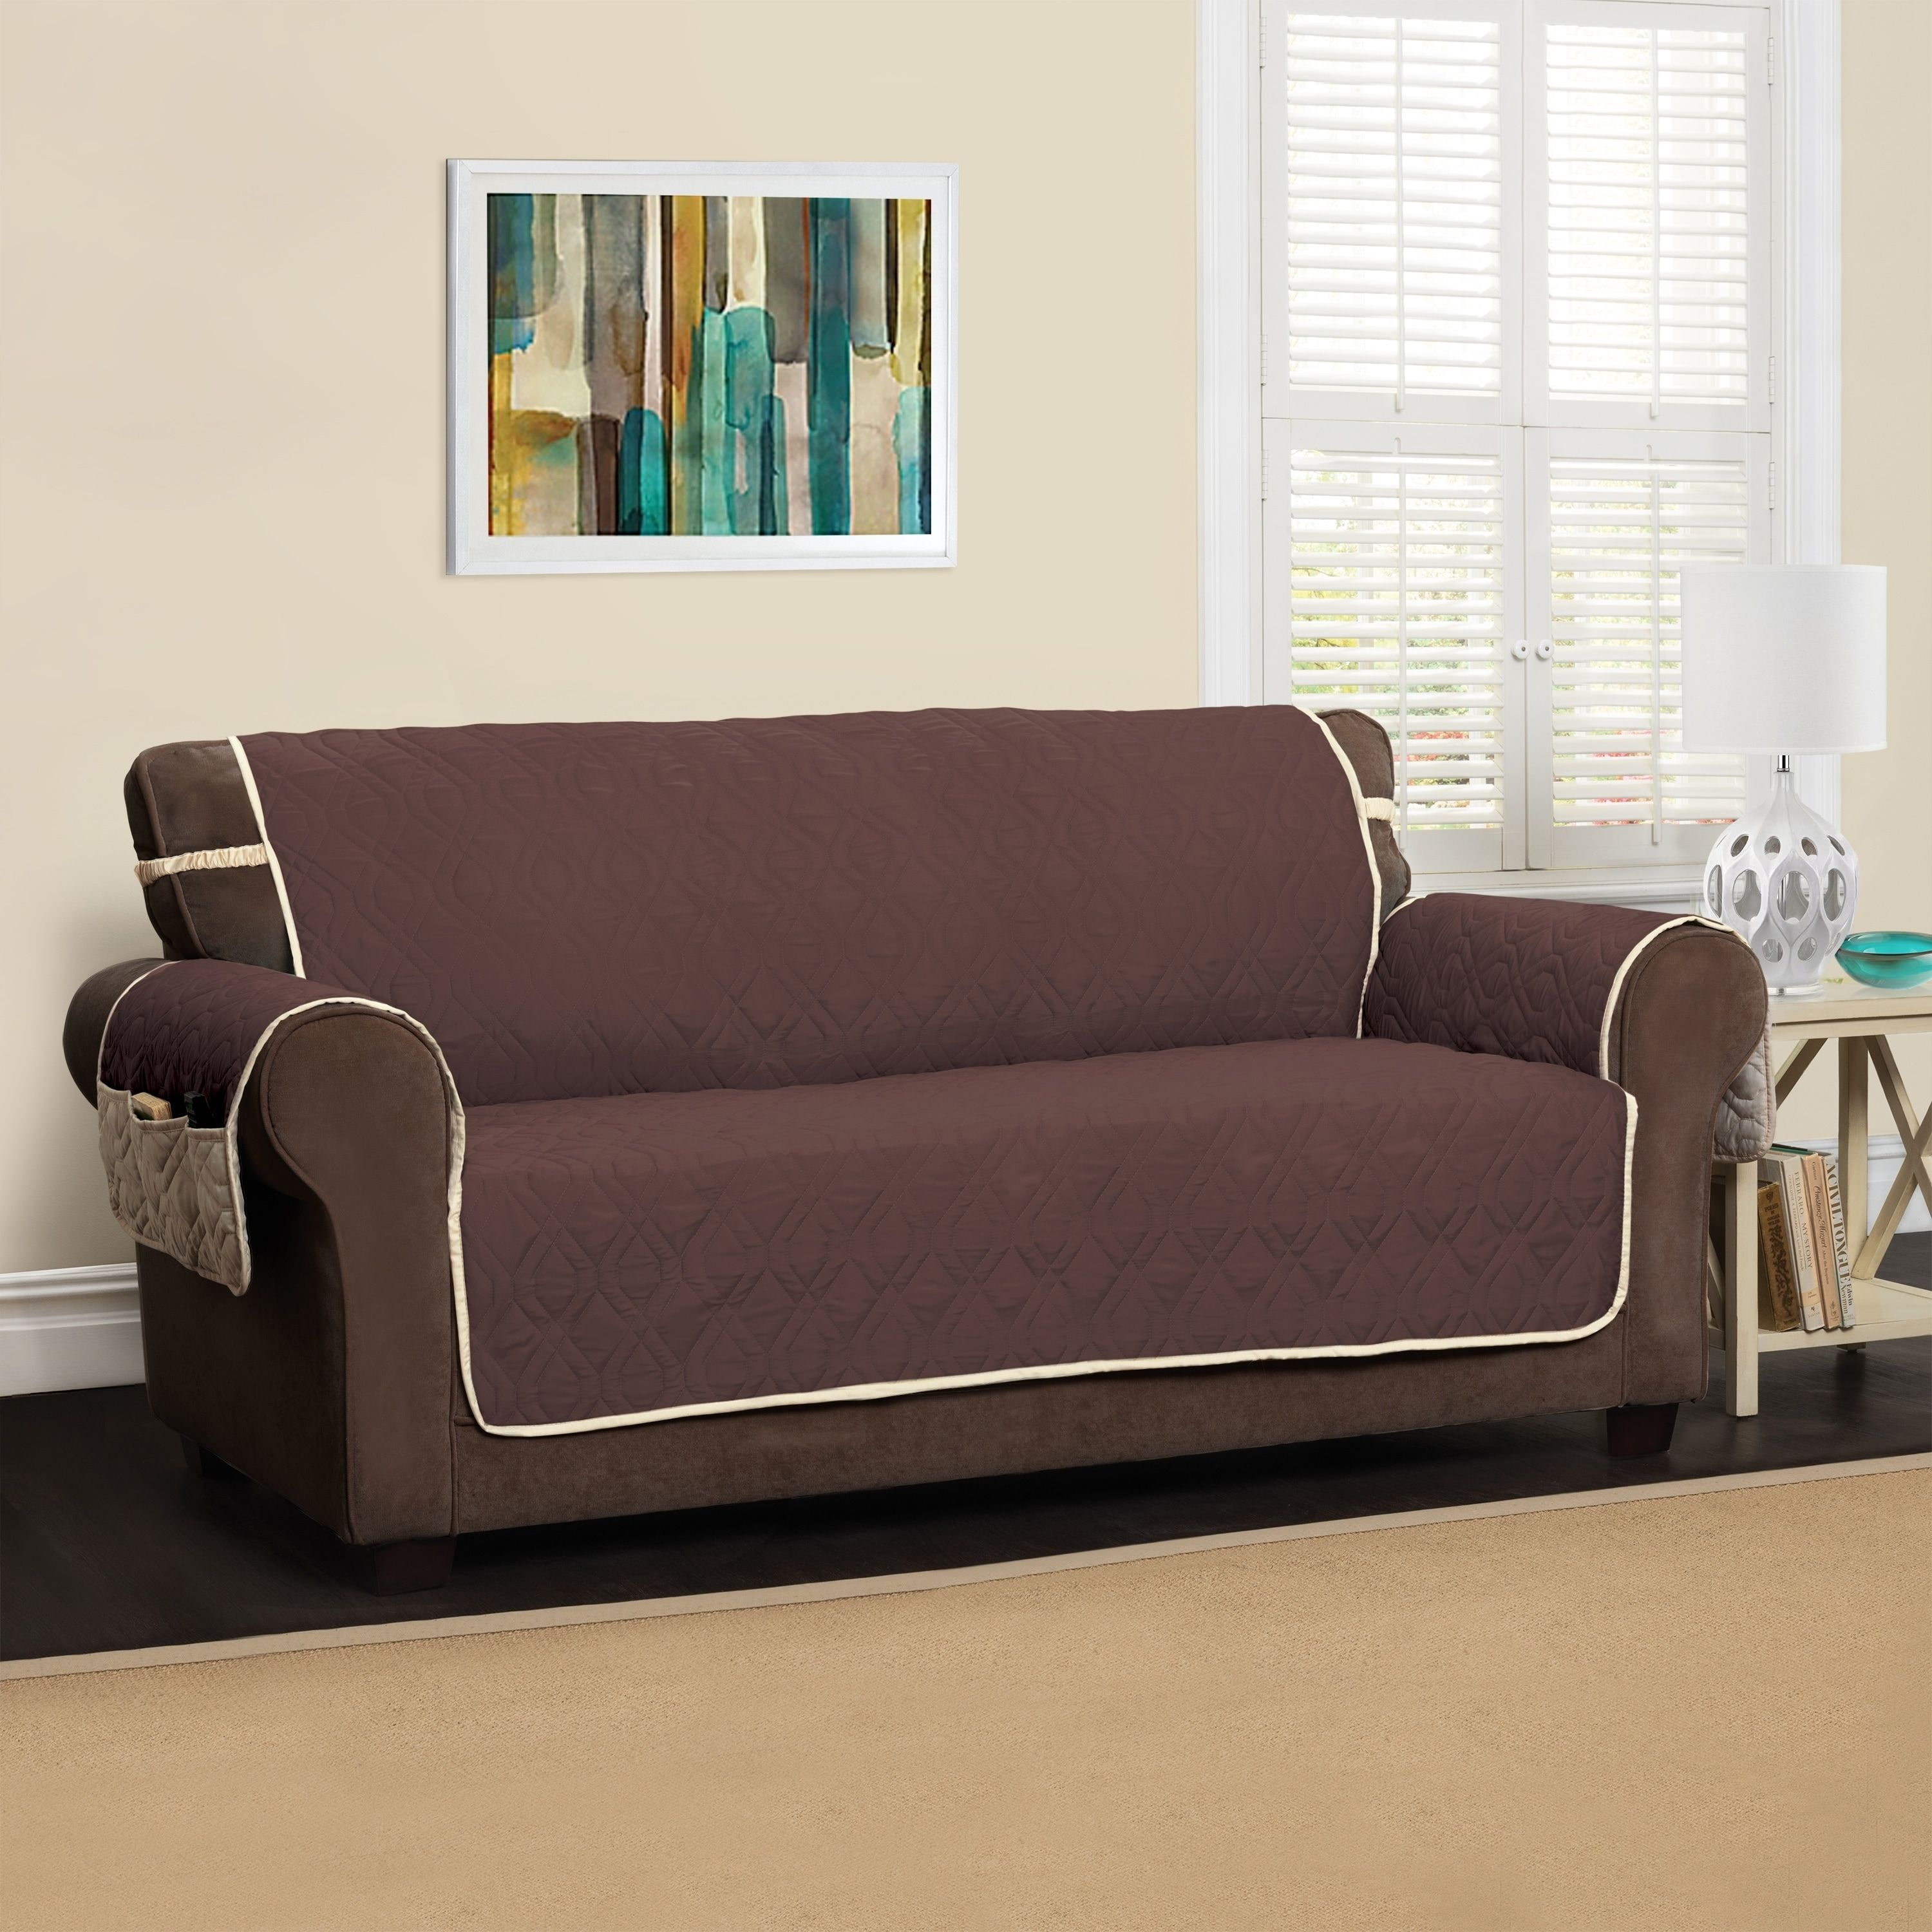 Innovative Textile Solutions 5 Star Sofa Protector Slipcover